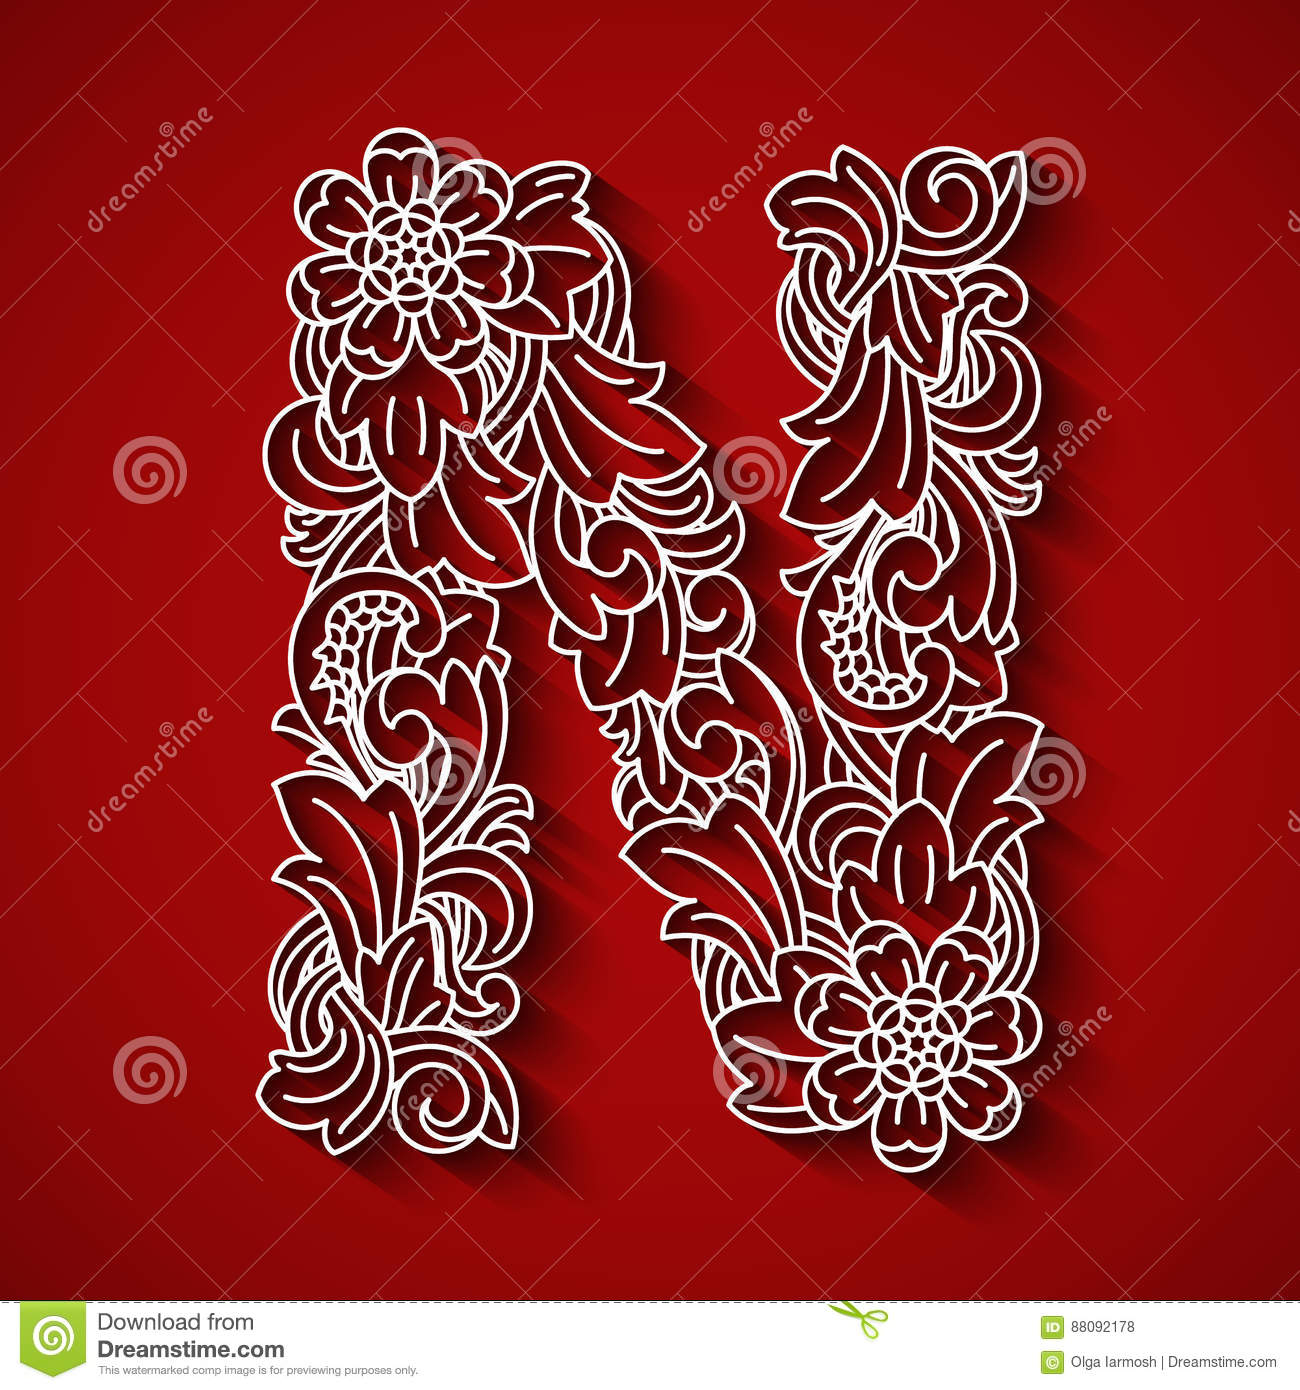 Paper Cutting White Letter N Red Background Floral Ornament